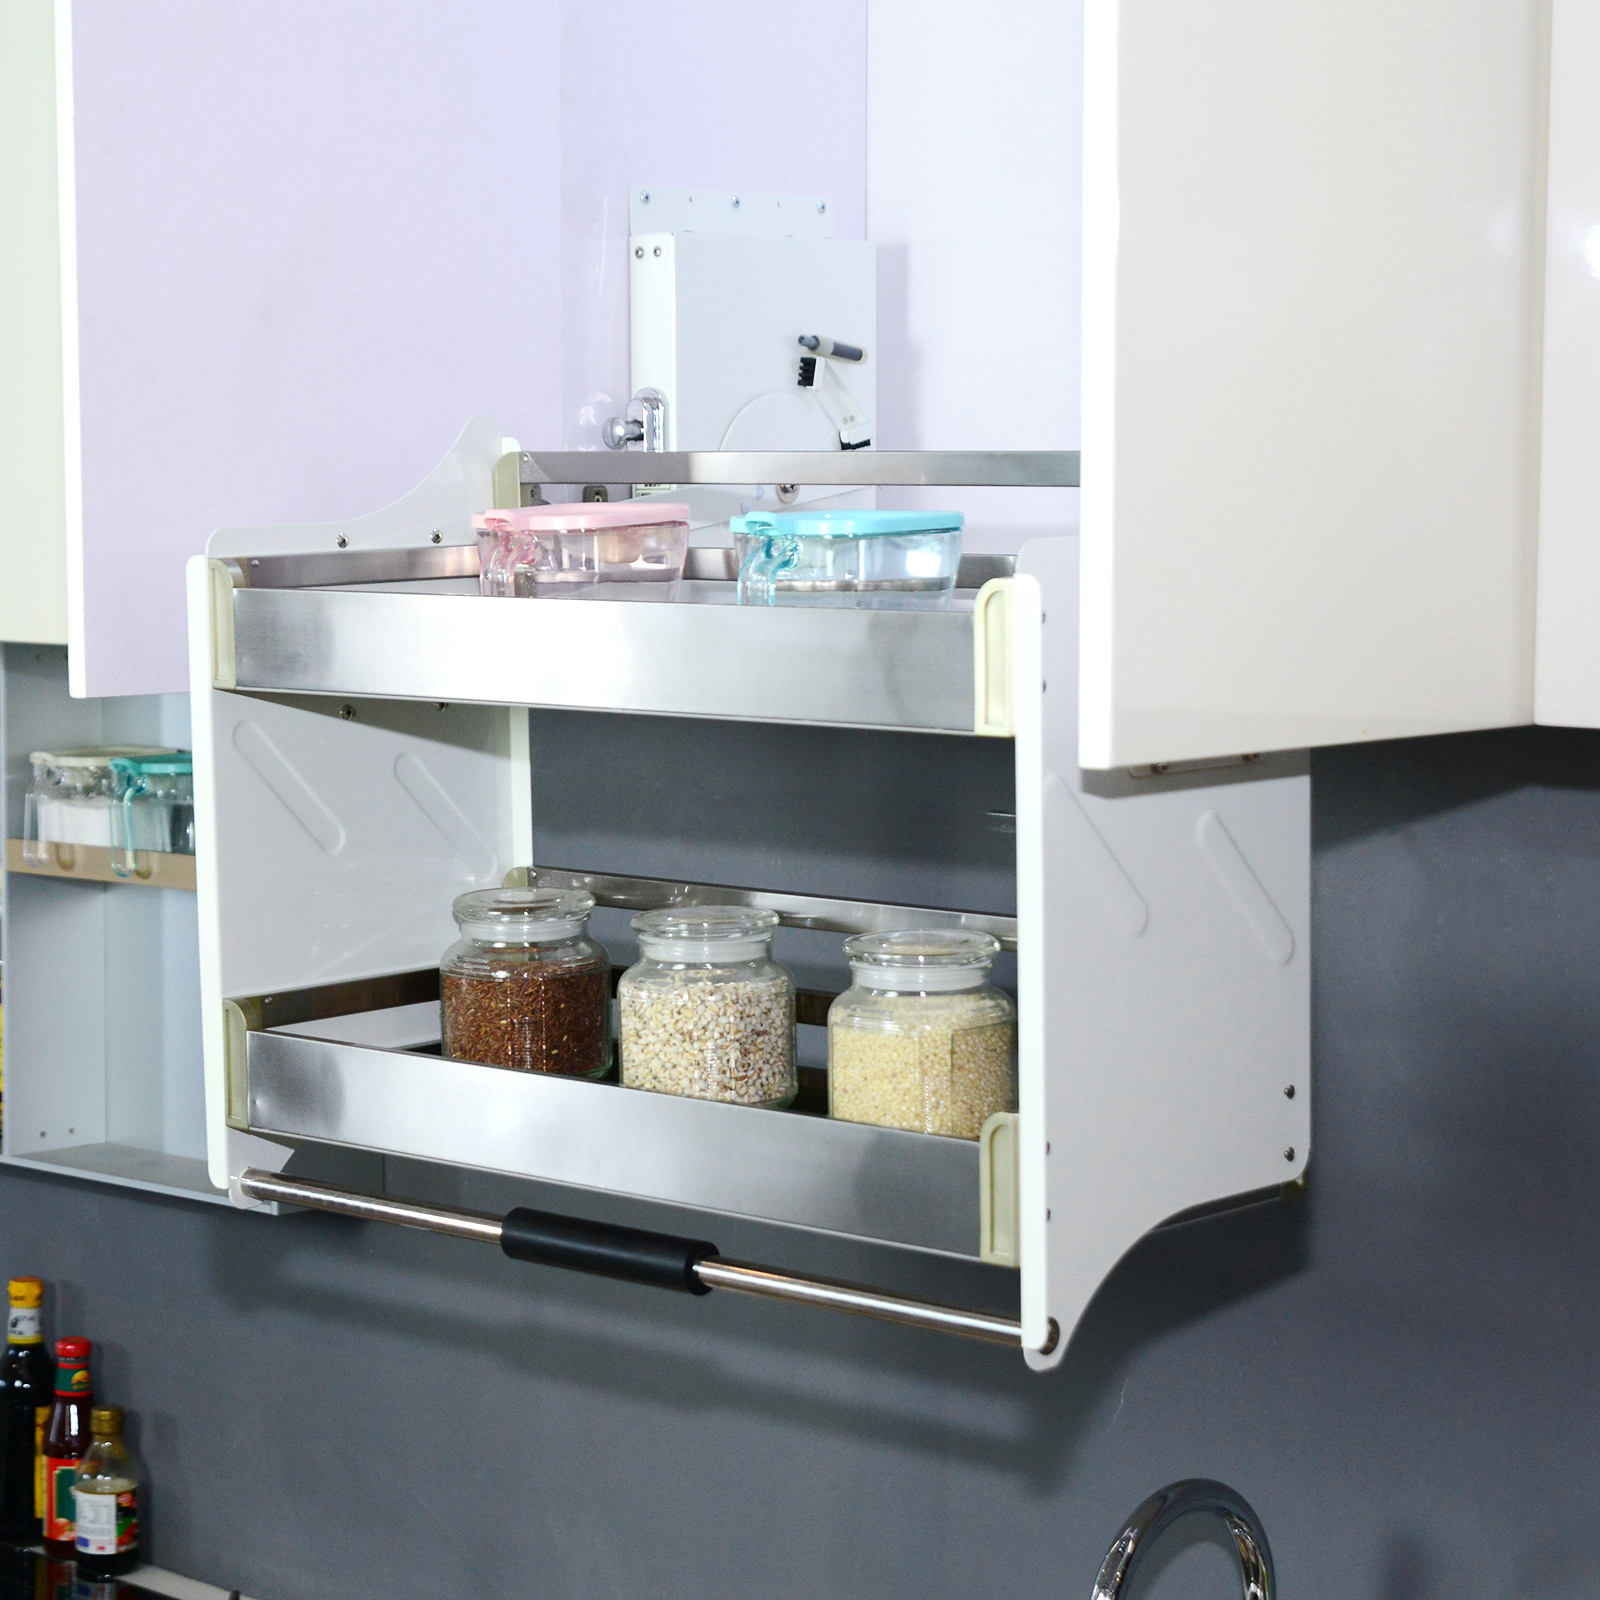 Details about 2 Tier Pull Down 700mm Storage Organizer Wall Cabinet  Shelving System Kitchen